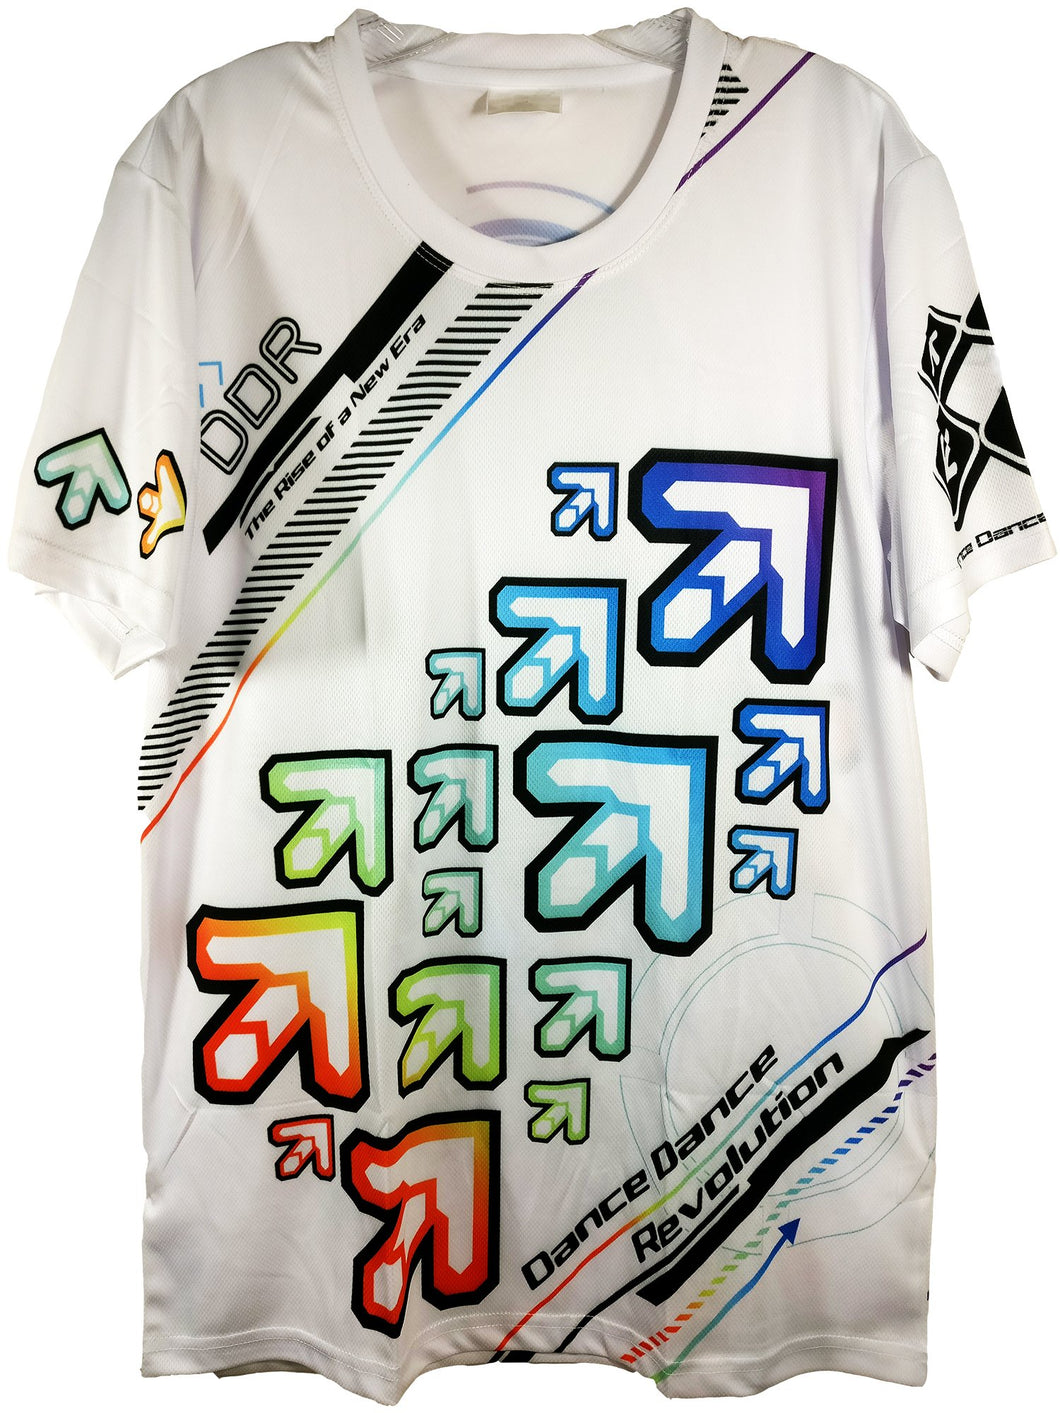 DDR VIVID ARROWS SHIRT